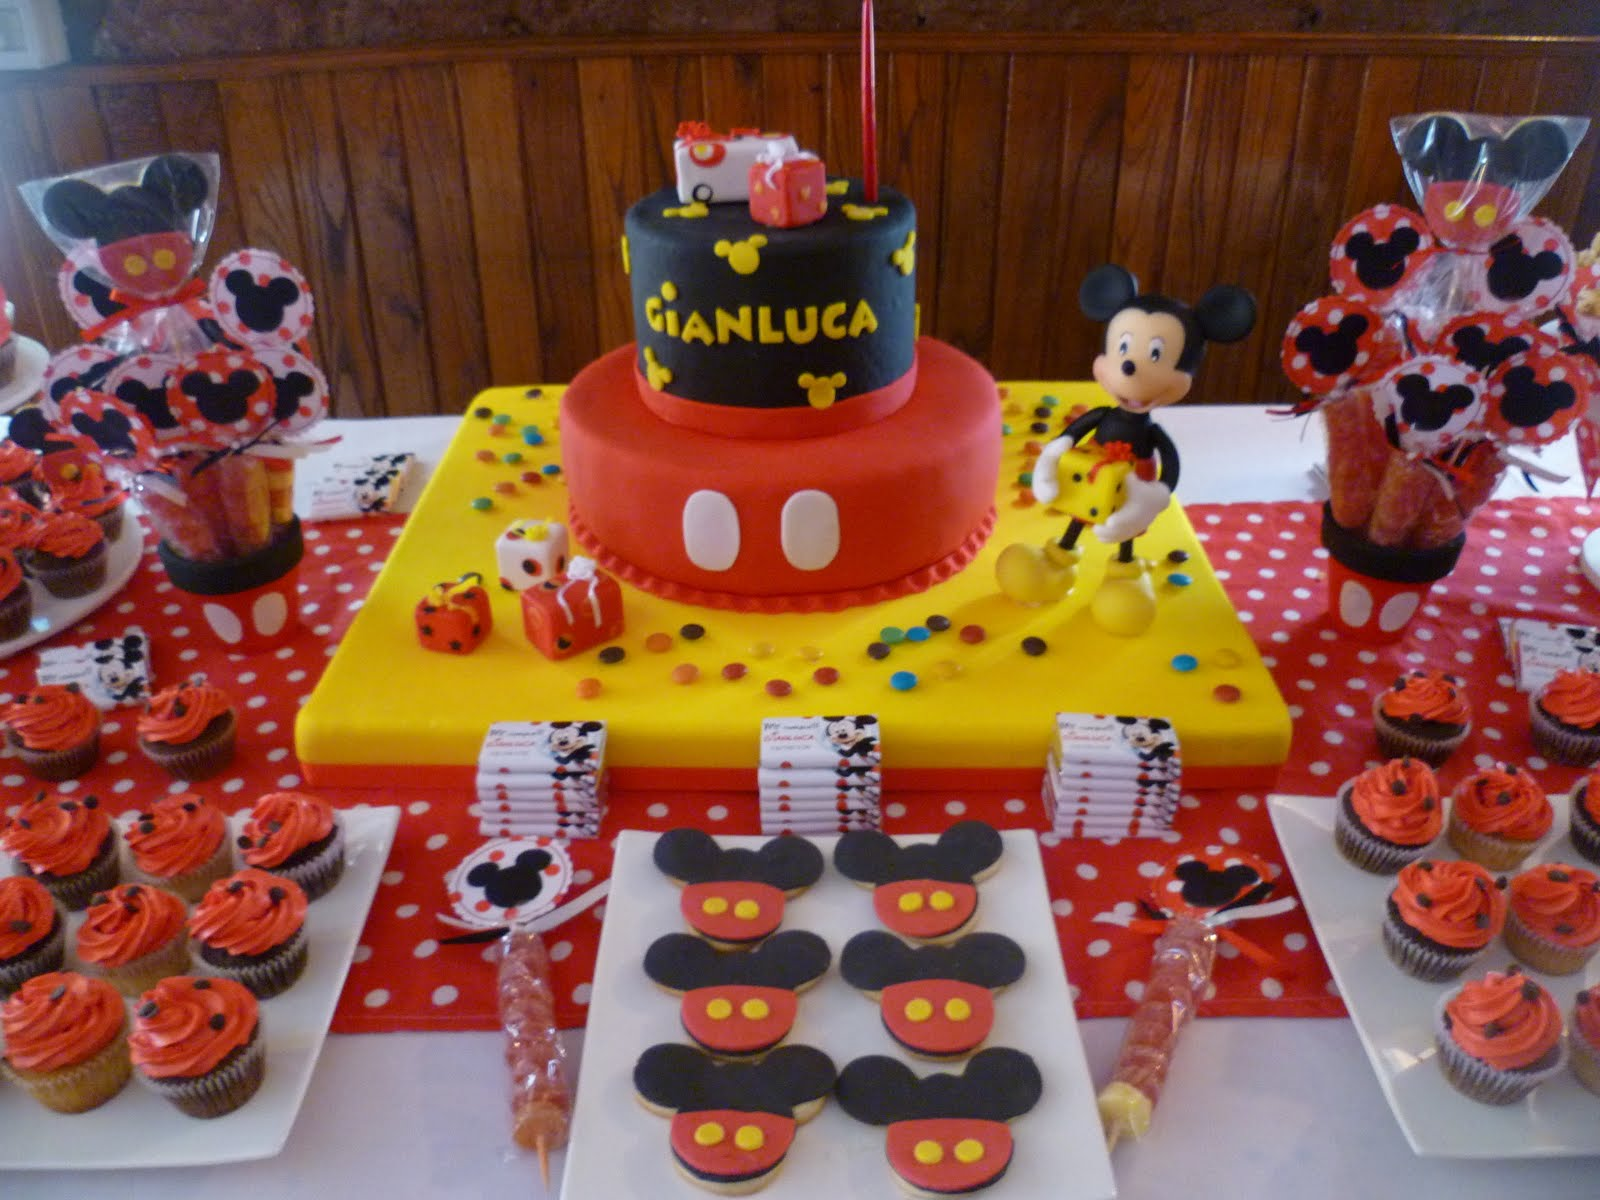 Sweet party box cumplea os gianluca mickey mouse for Mesa de cumpleanos de mickey